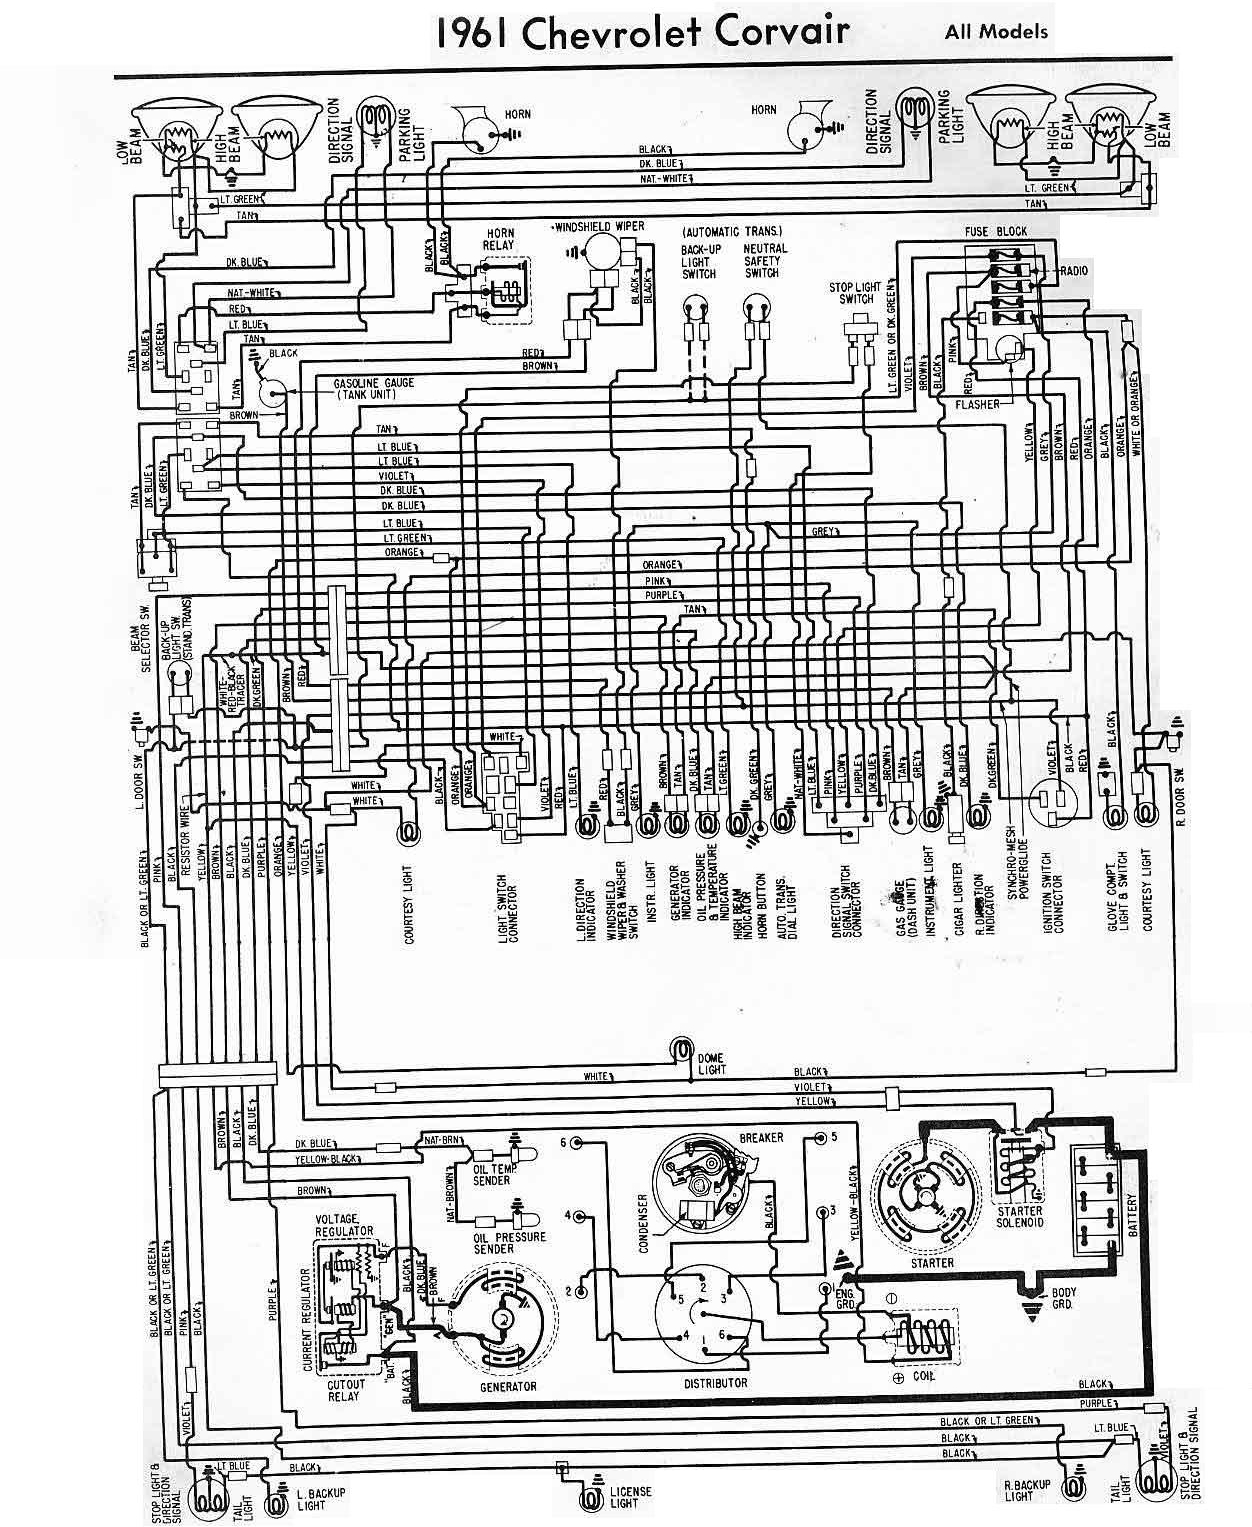 hight resolution of 1961 corvair wiring diagram free wiring diagram for you u2022 corvair motor diagram corvair wiring diagram